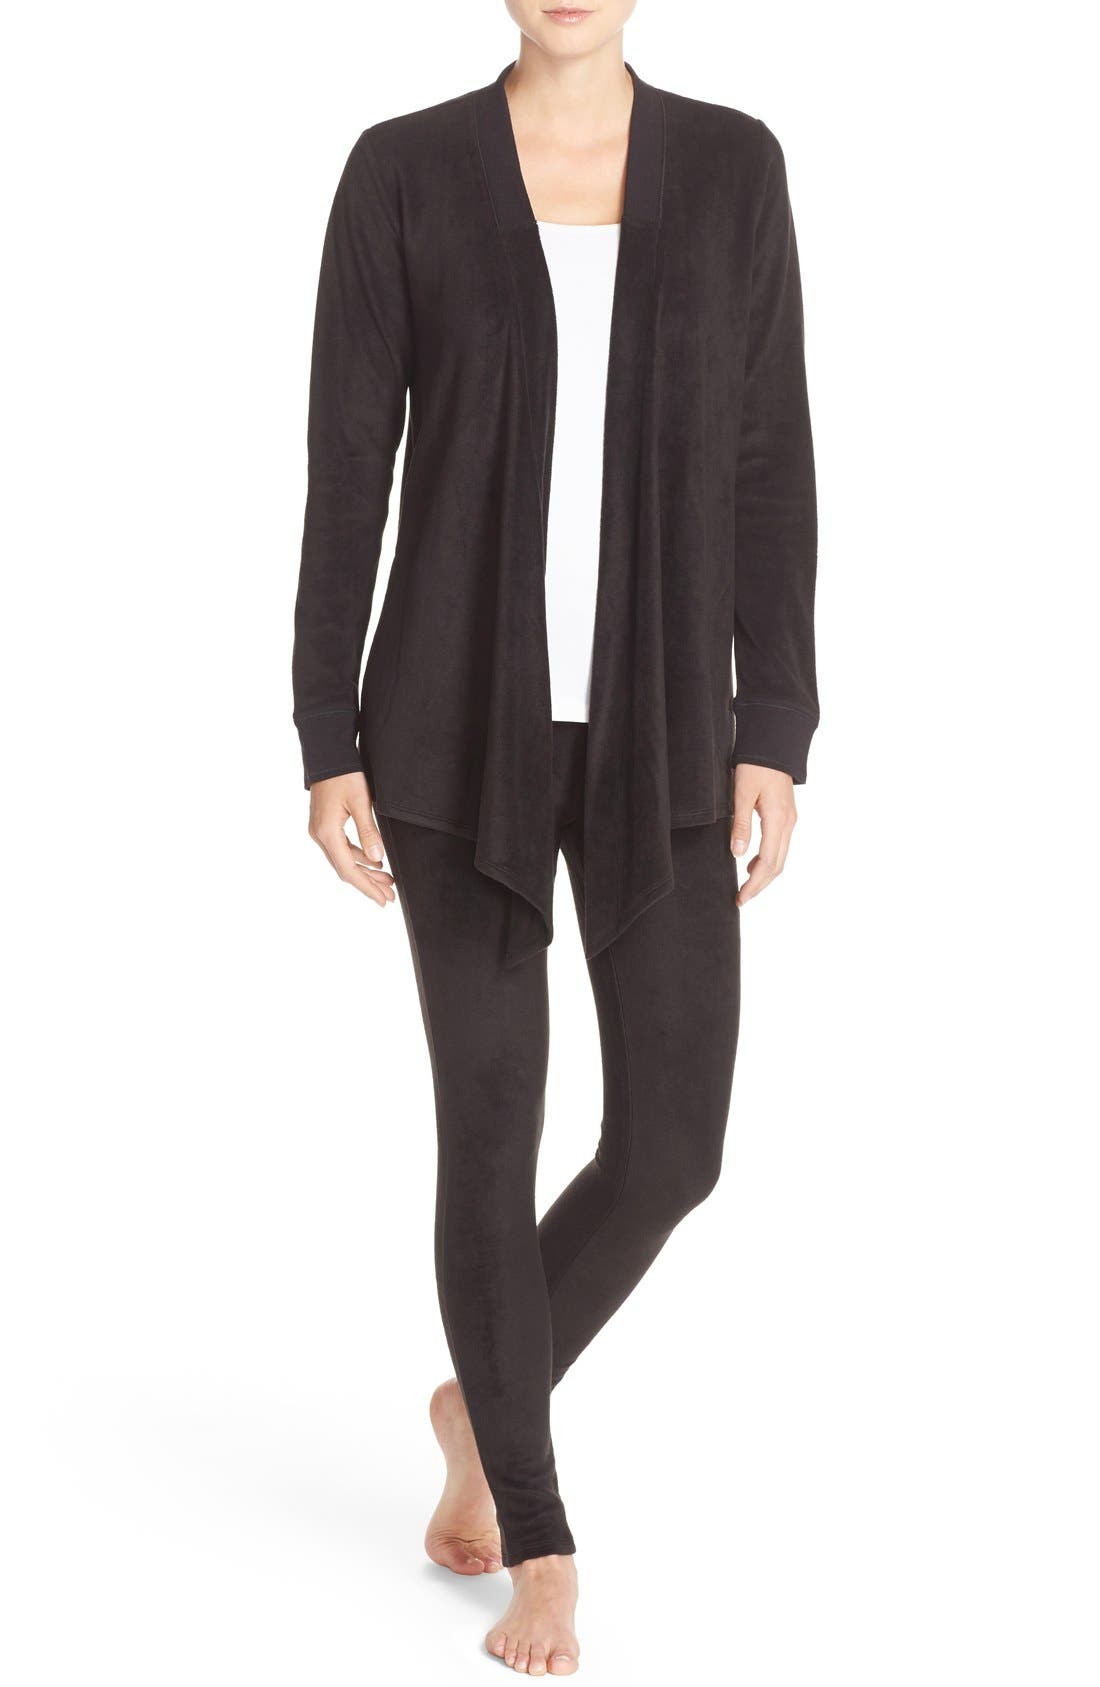 Alternate Image 1 Selected - DKNY Open Cardigan & Lounge Leggings